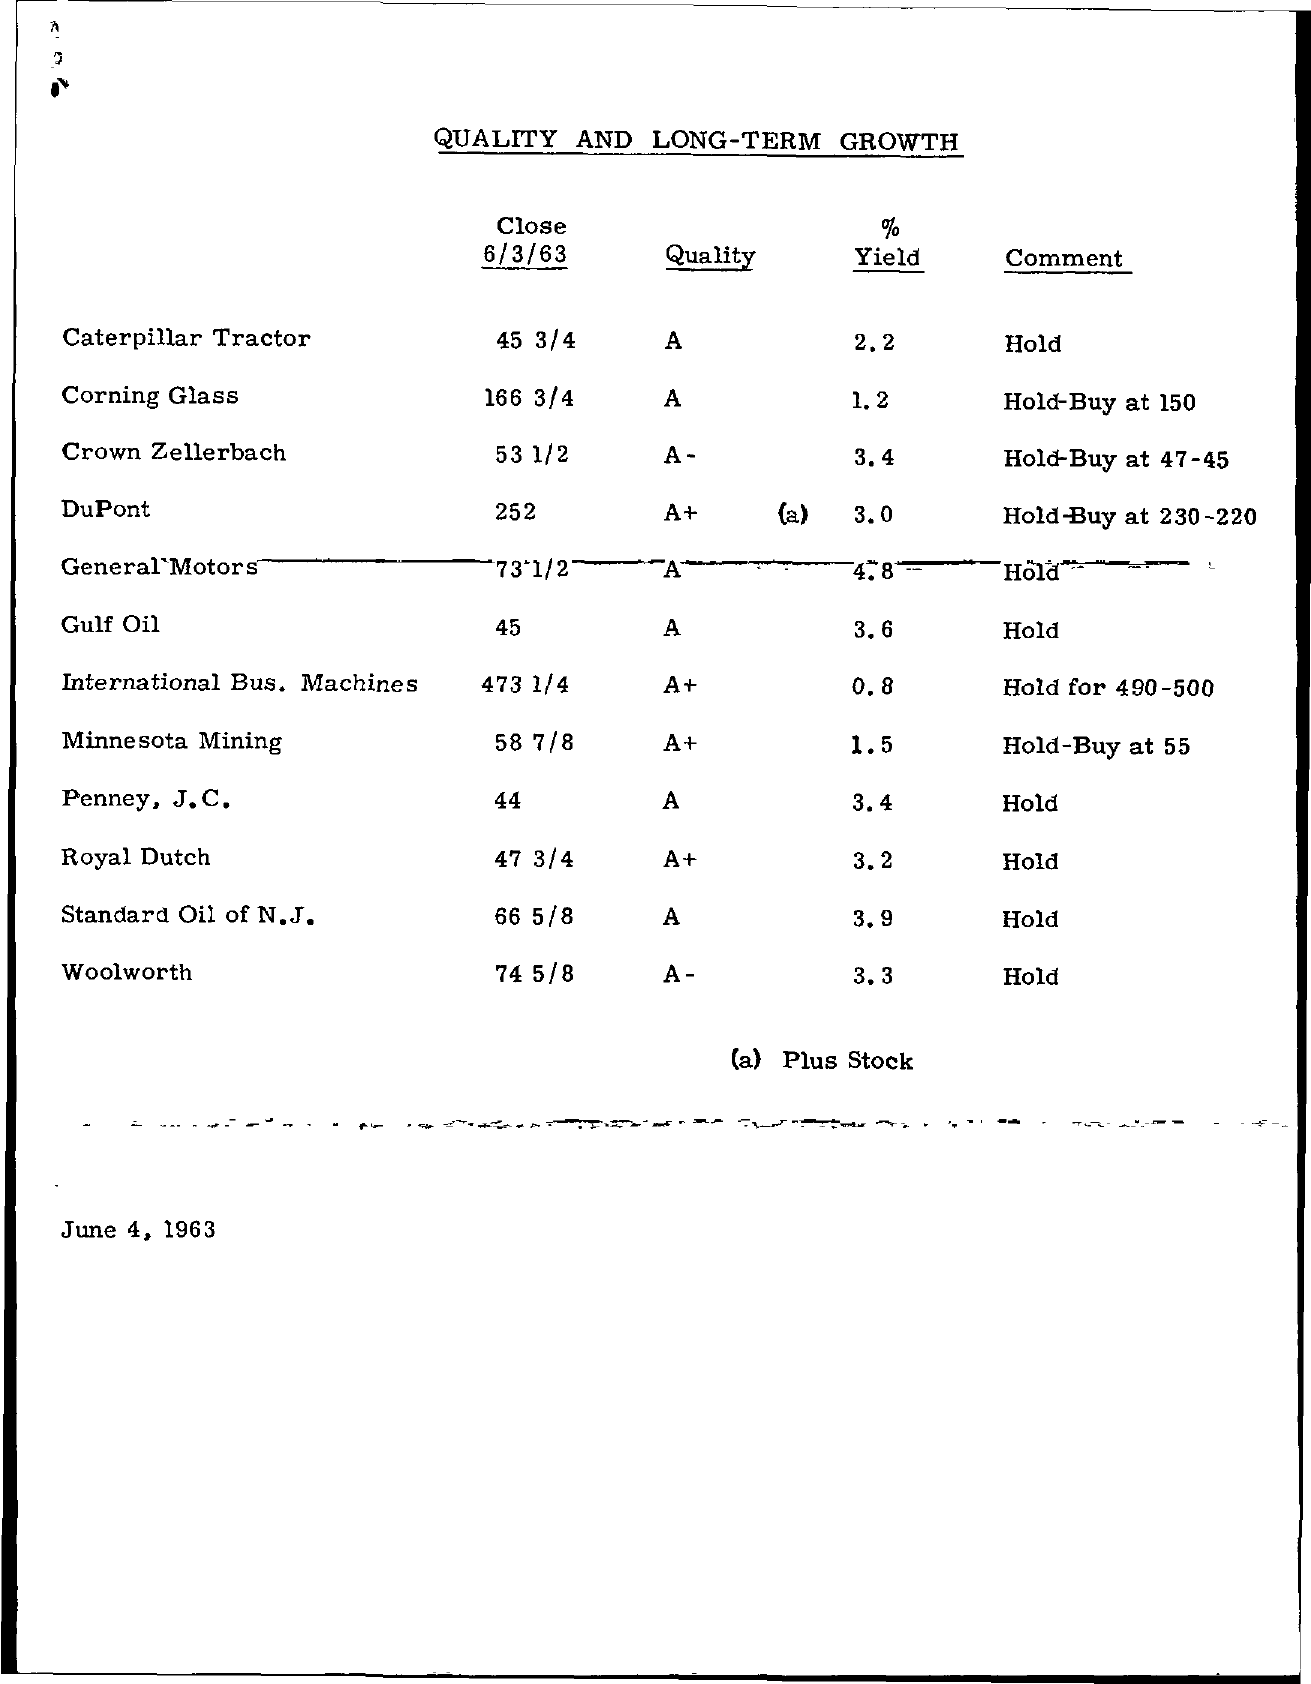 Tabell's Market Letter - June 04, 1963 page 2